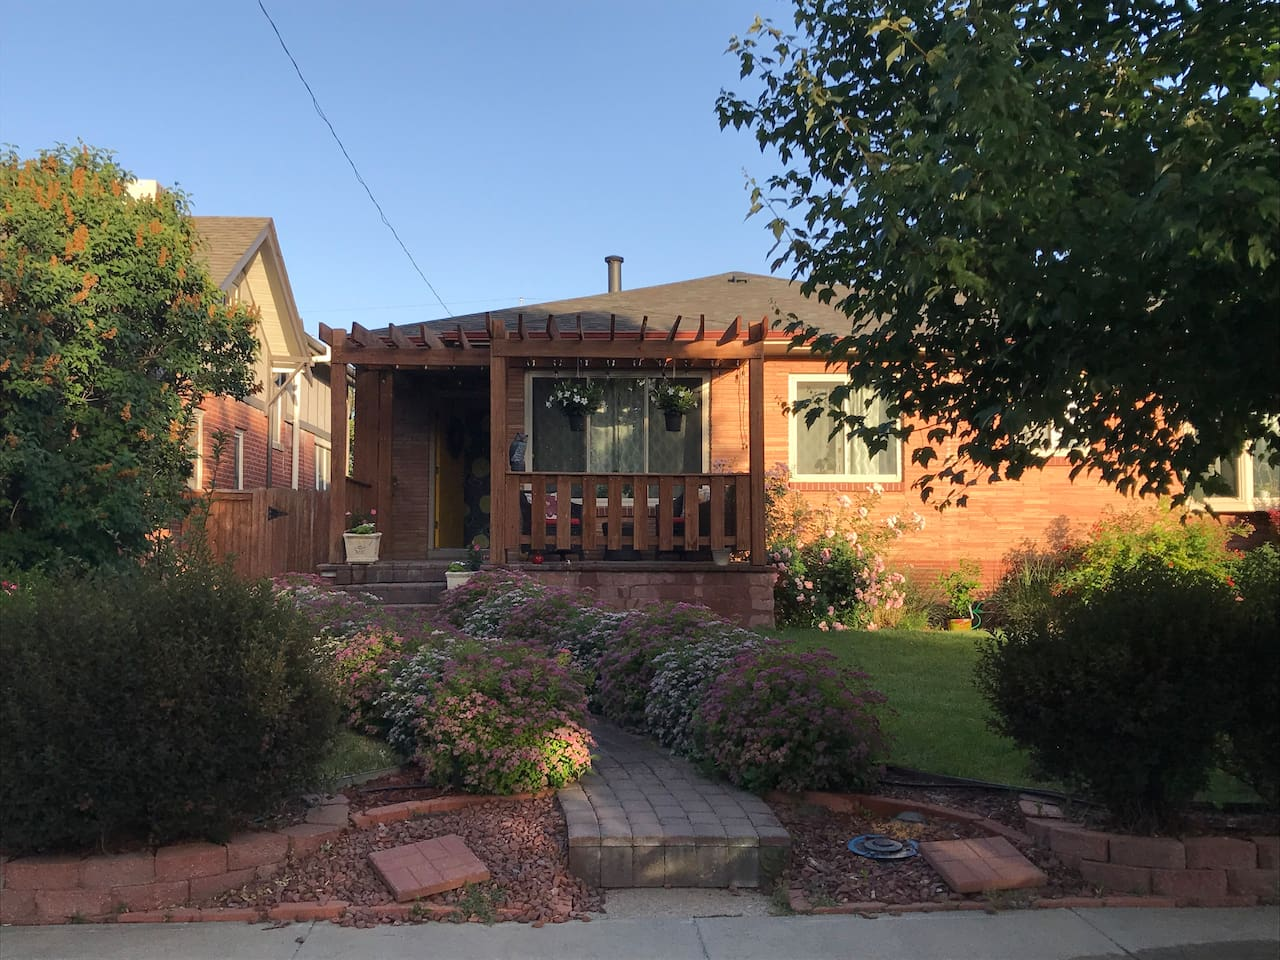 Welcome to our home!  A quiet street in one of Denver's most desirable old neighborhoods.  Safe and fun to walk around!